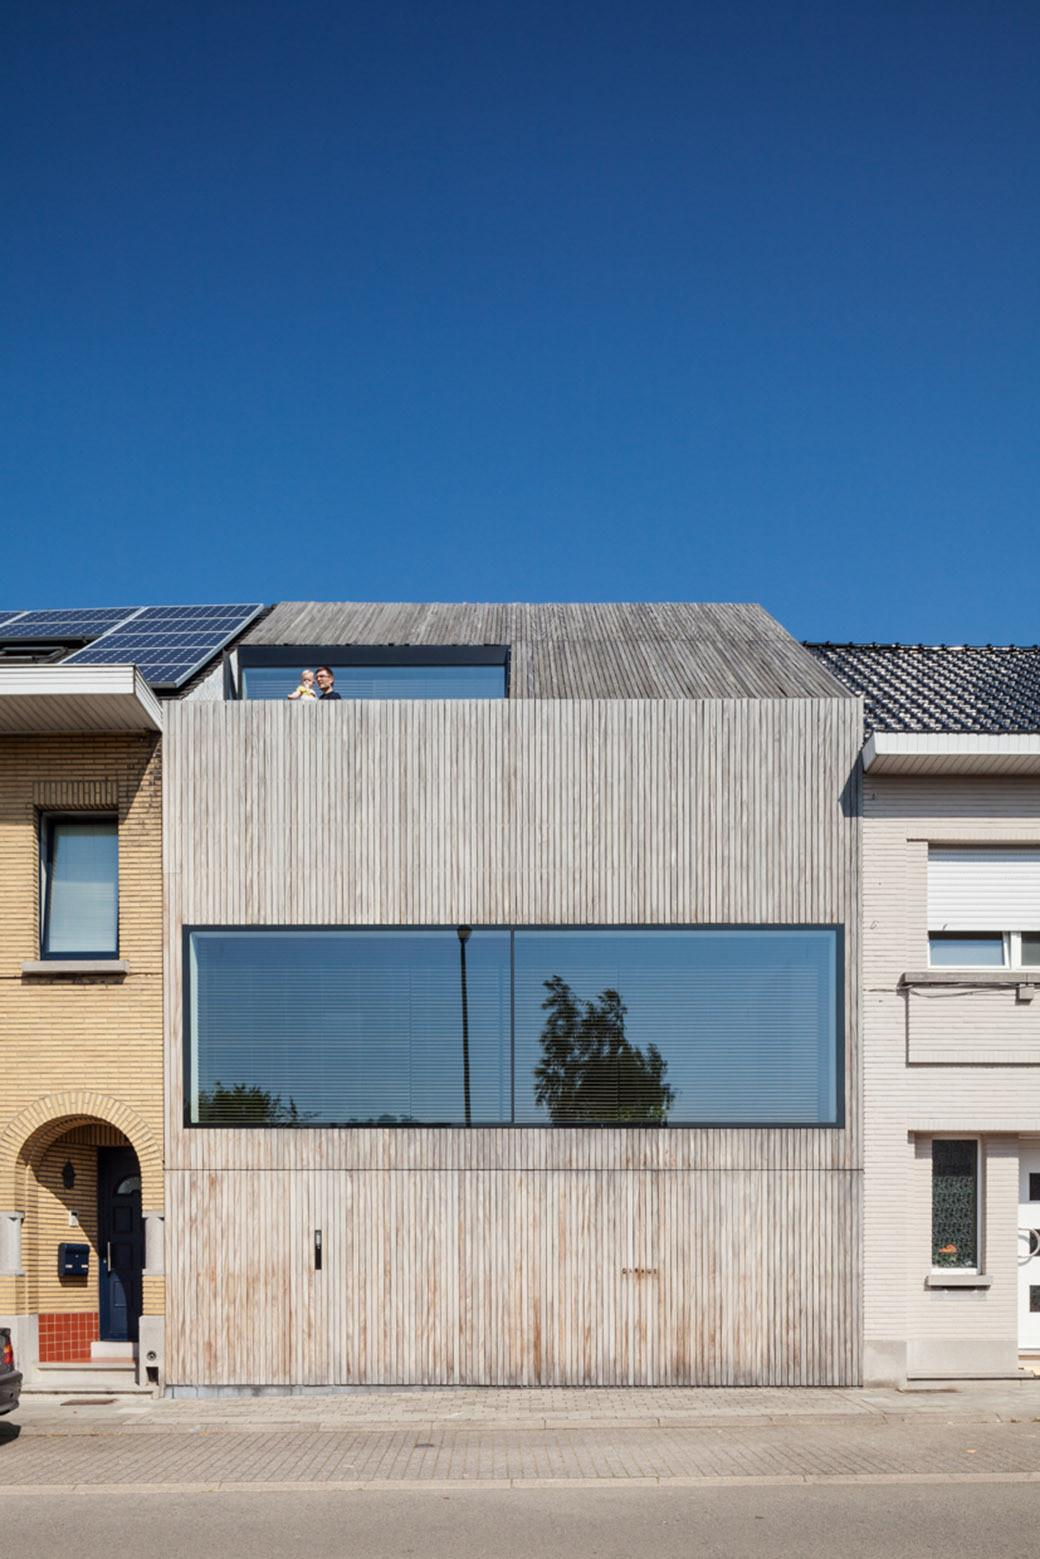 Private Comfortable Wooden House Belgium